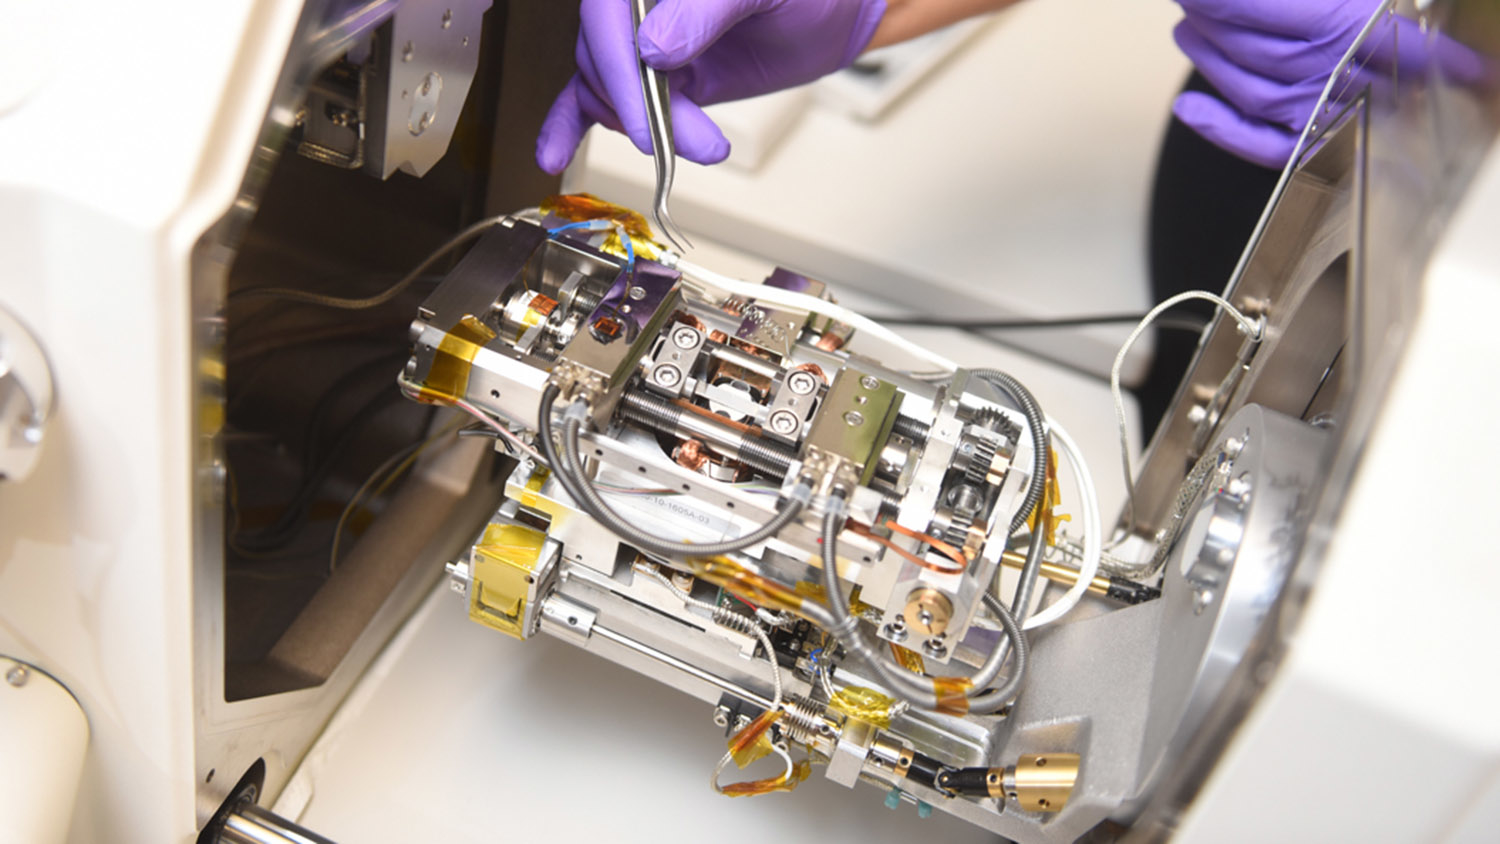 photo of an in situ scanning electron microscopy heating and loading device.